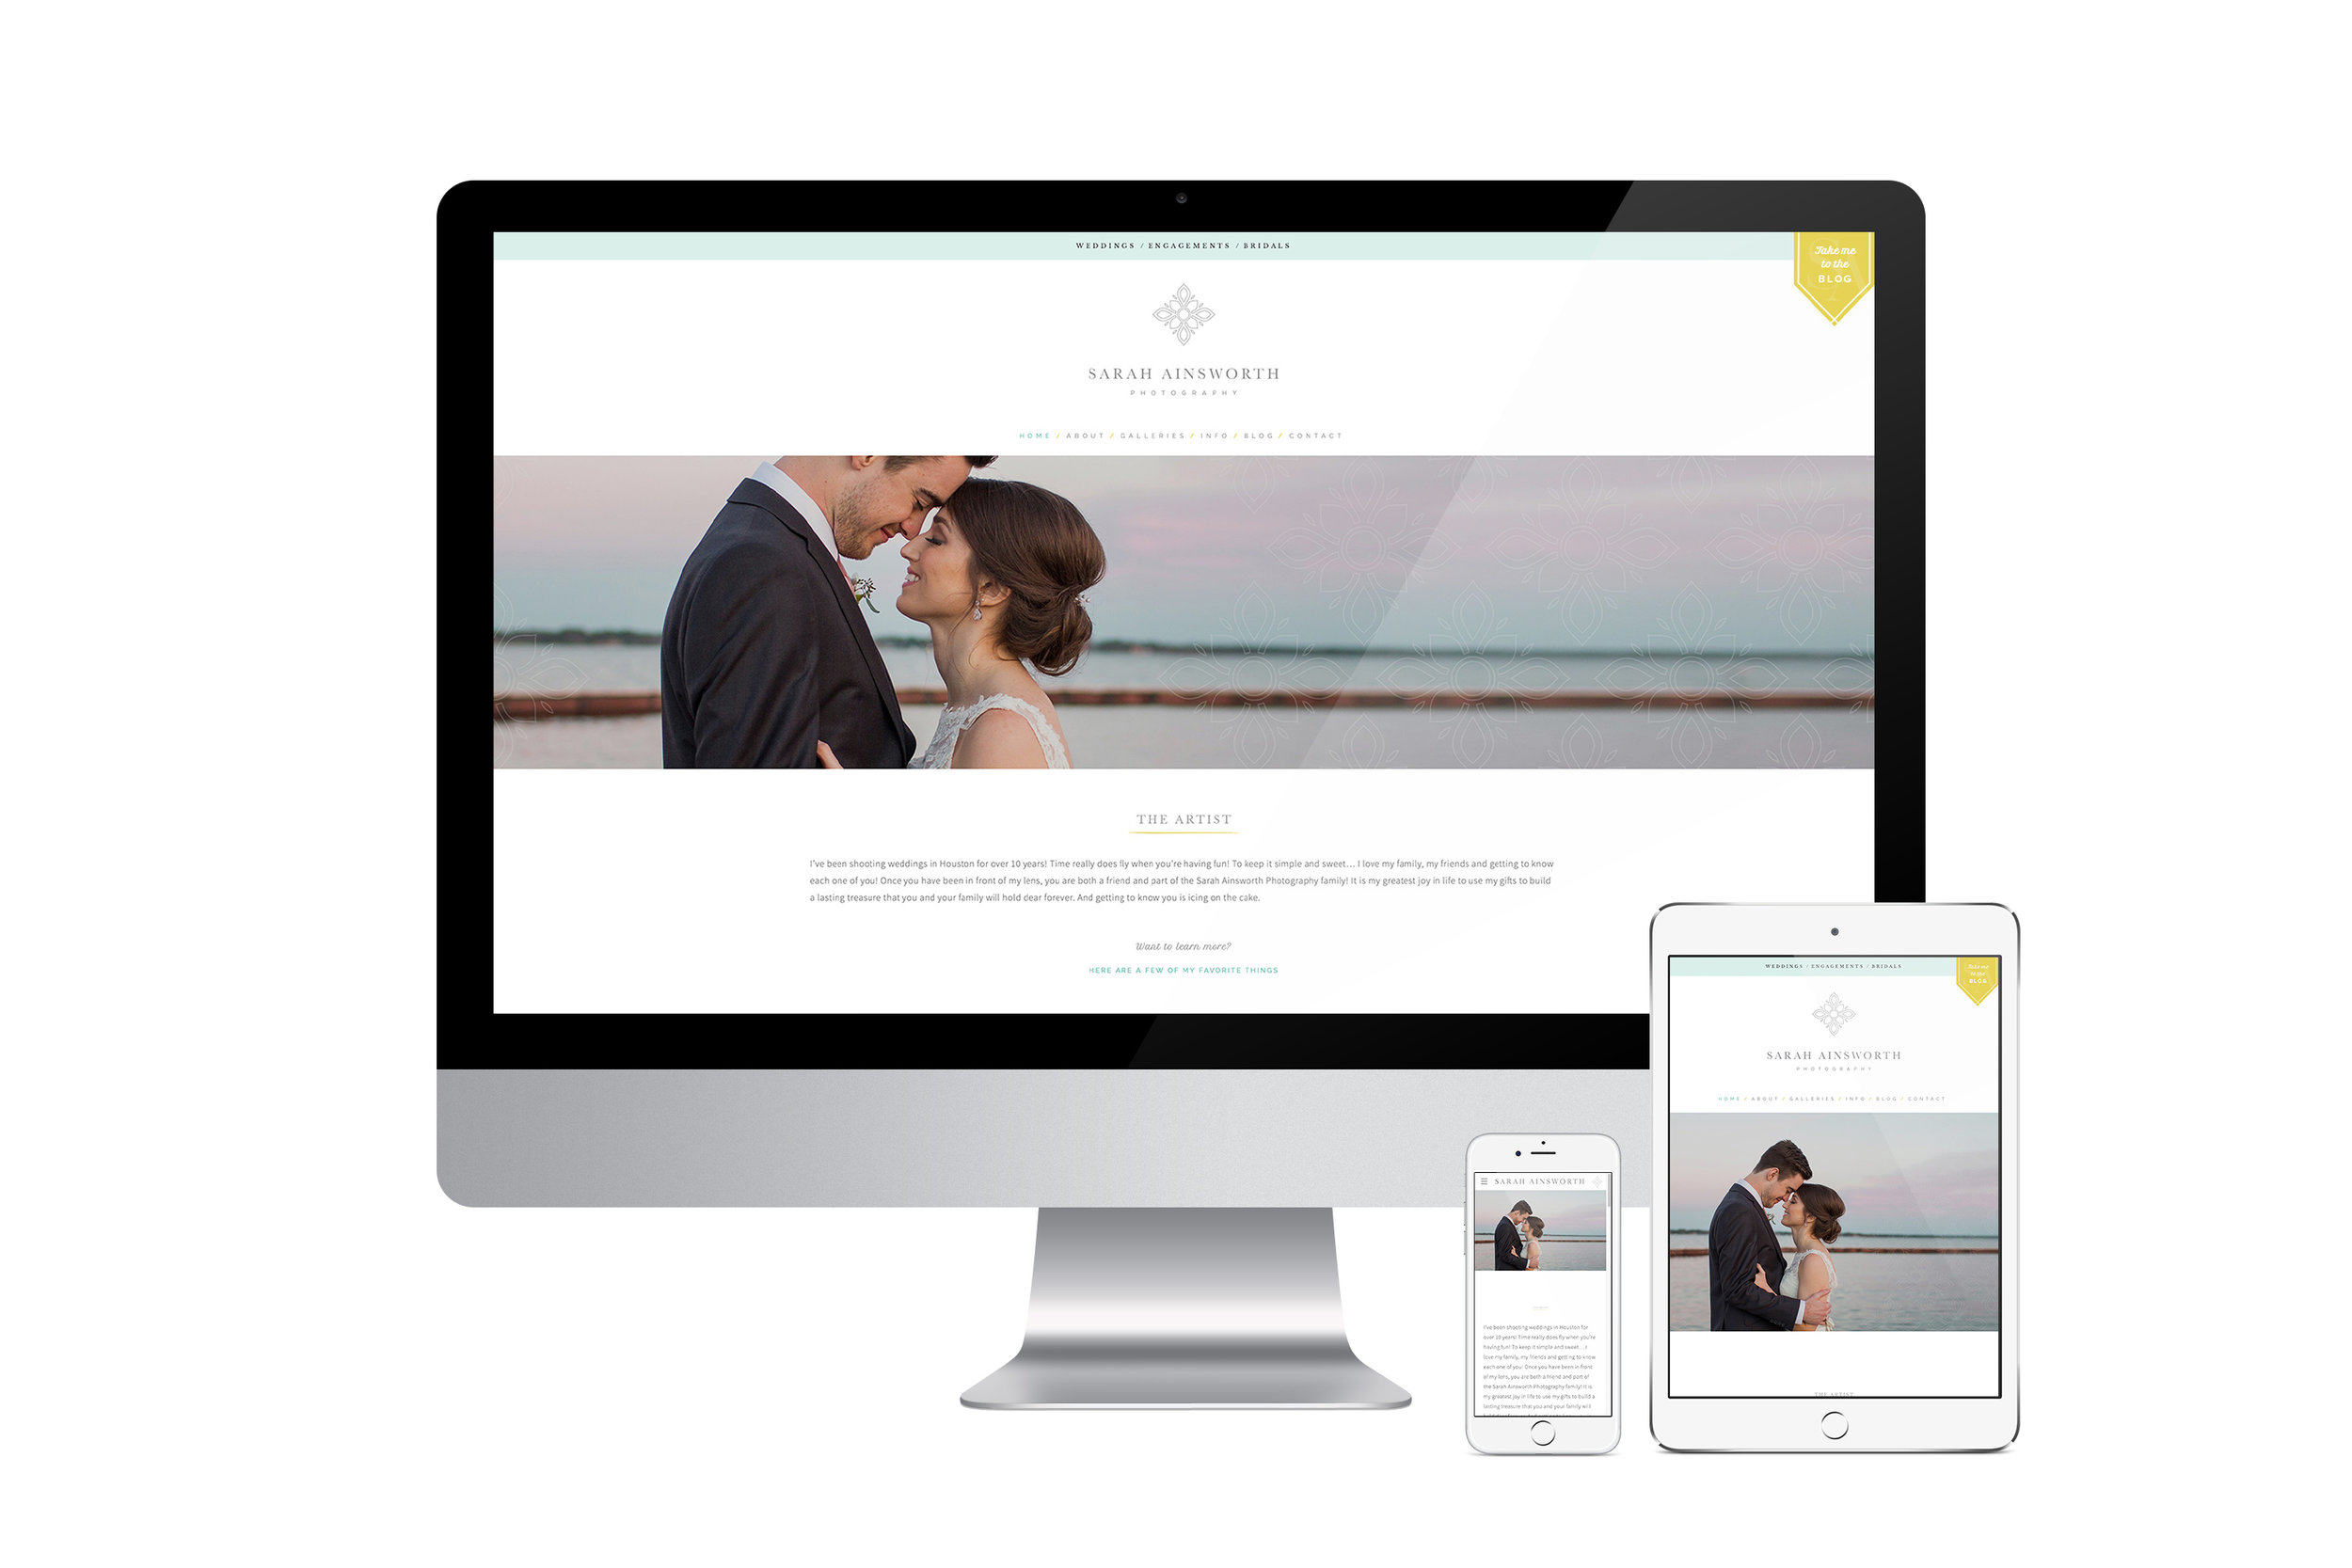 SarahAinsworthPhotography-SquareSpace-Design-Responsive-AkulaKreative.jpg